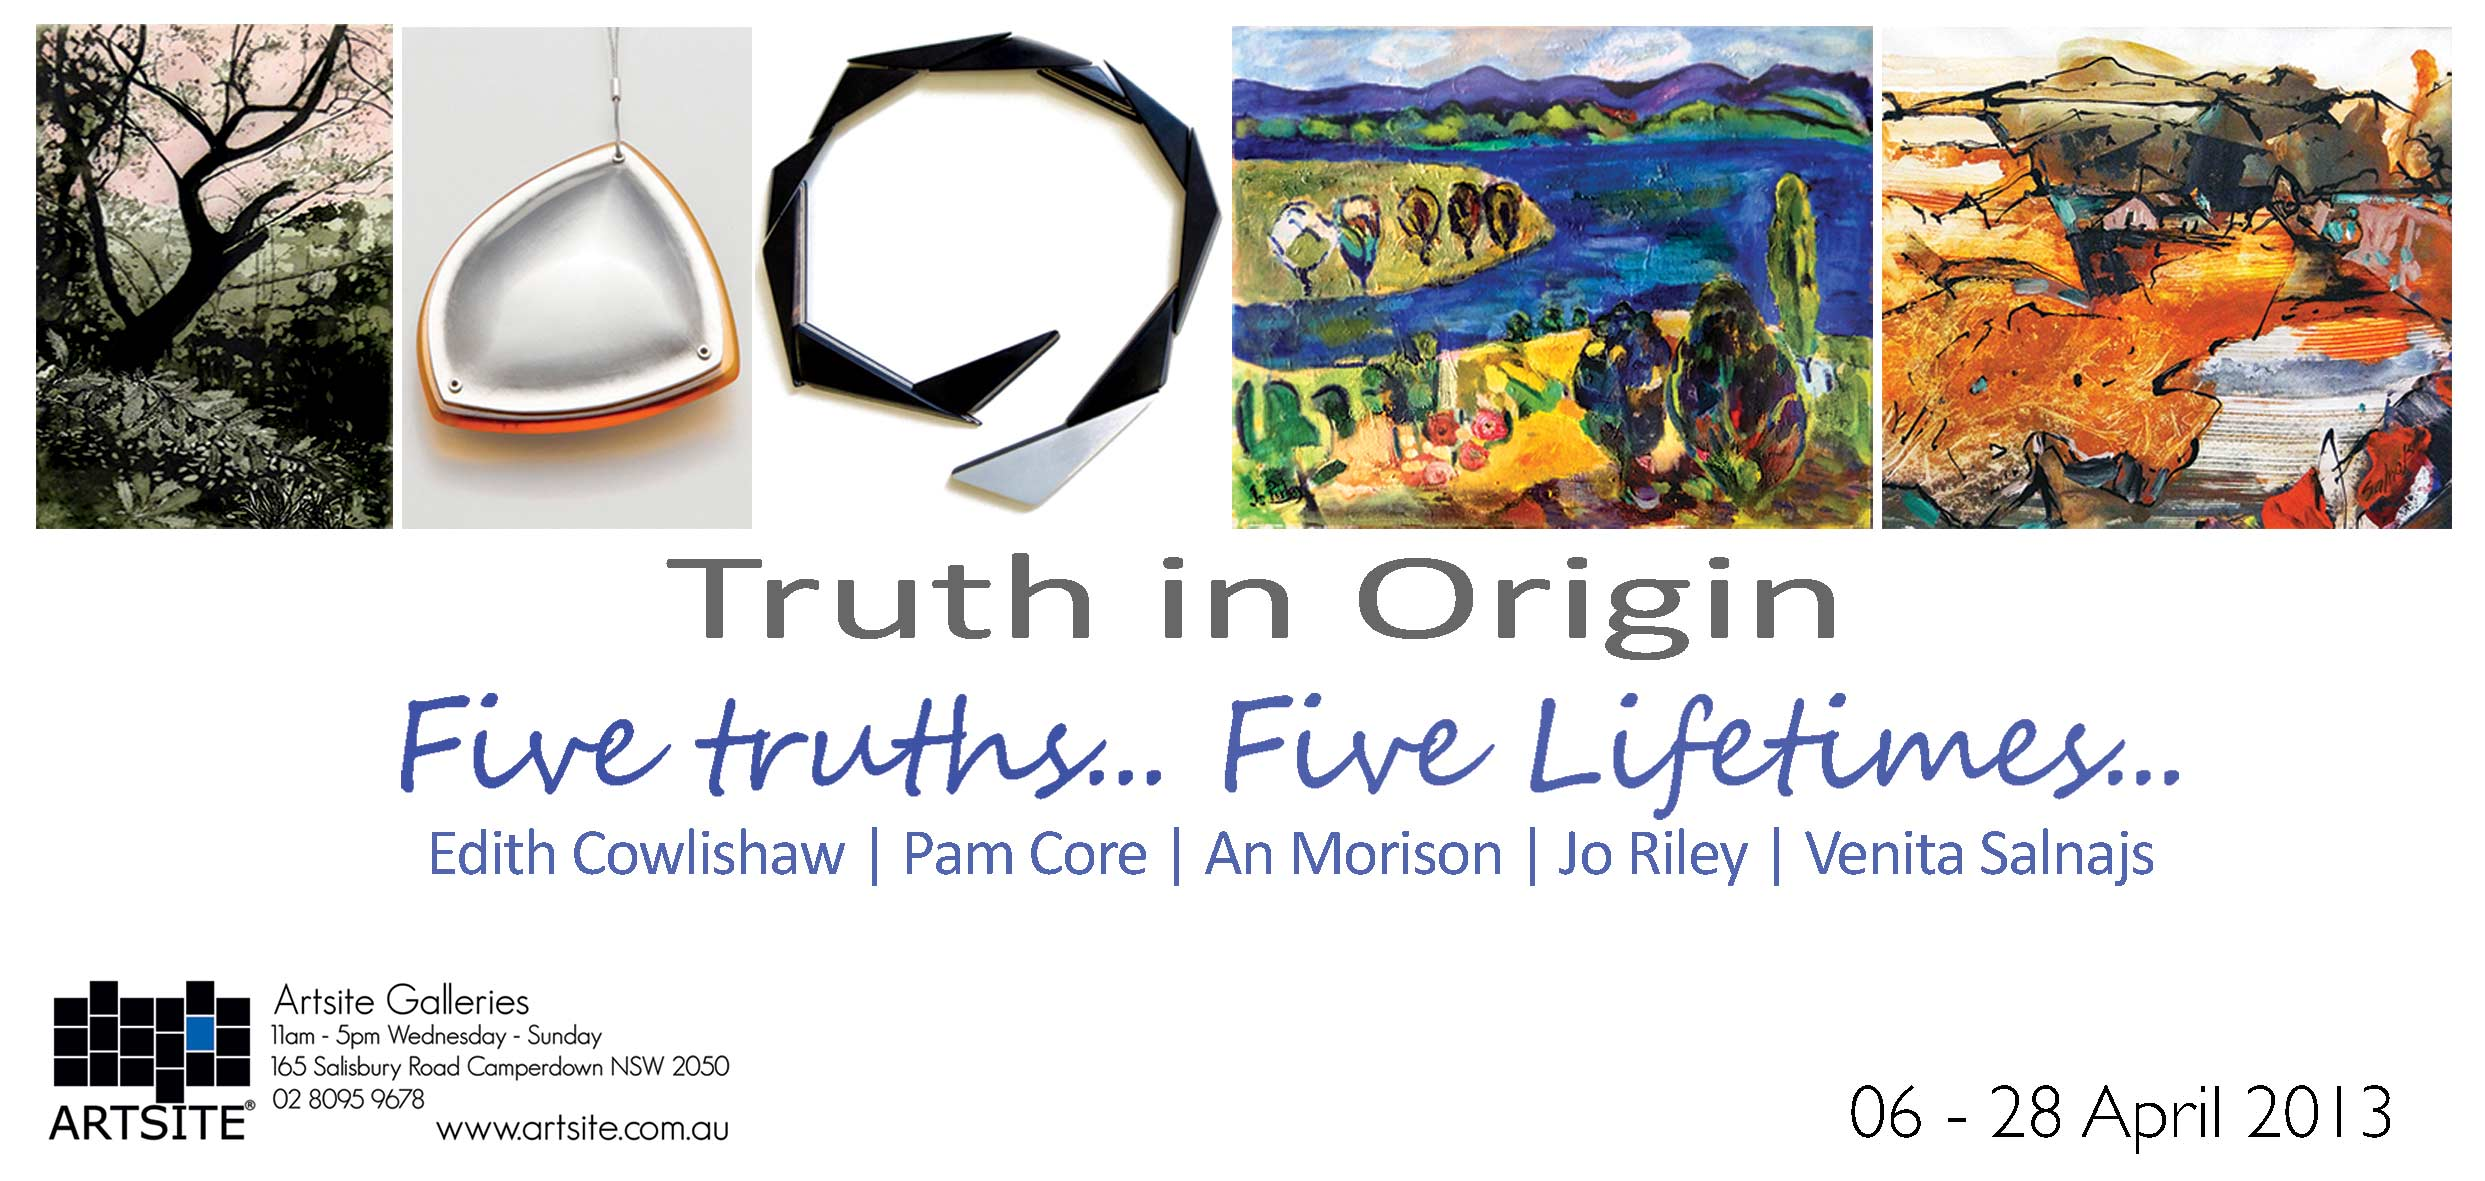 View Exhibition at Artsite Gallery. 09 February - 03 March 2013: Truth in Origin- Five Truths... Five Lifetimes.... Edith Cowlishaw | Pam Core | An Morison | Venita Salnajs | Jo Riley